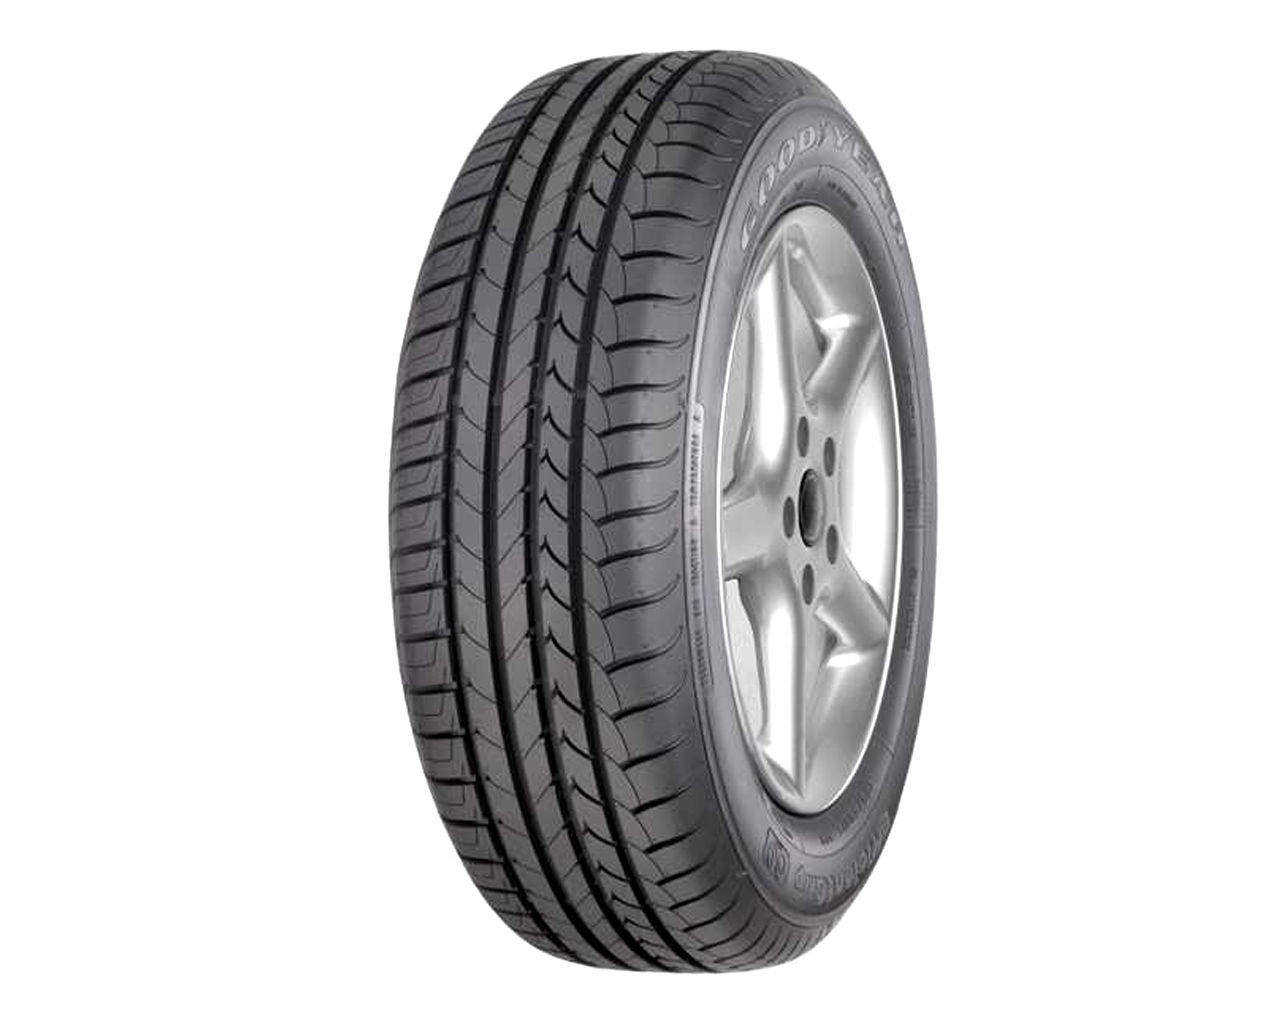 Goodyear EFFICIENTGRIP ROF 245/45 R19 EFFIGRIP 102Y ROF MOE XL SCT